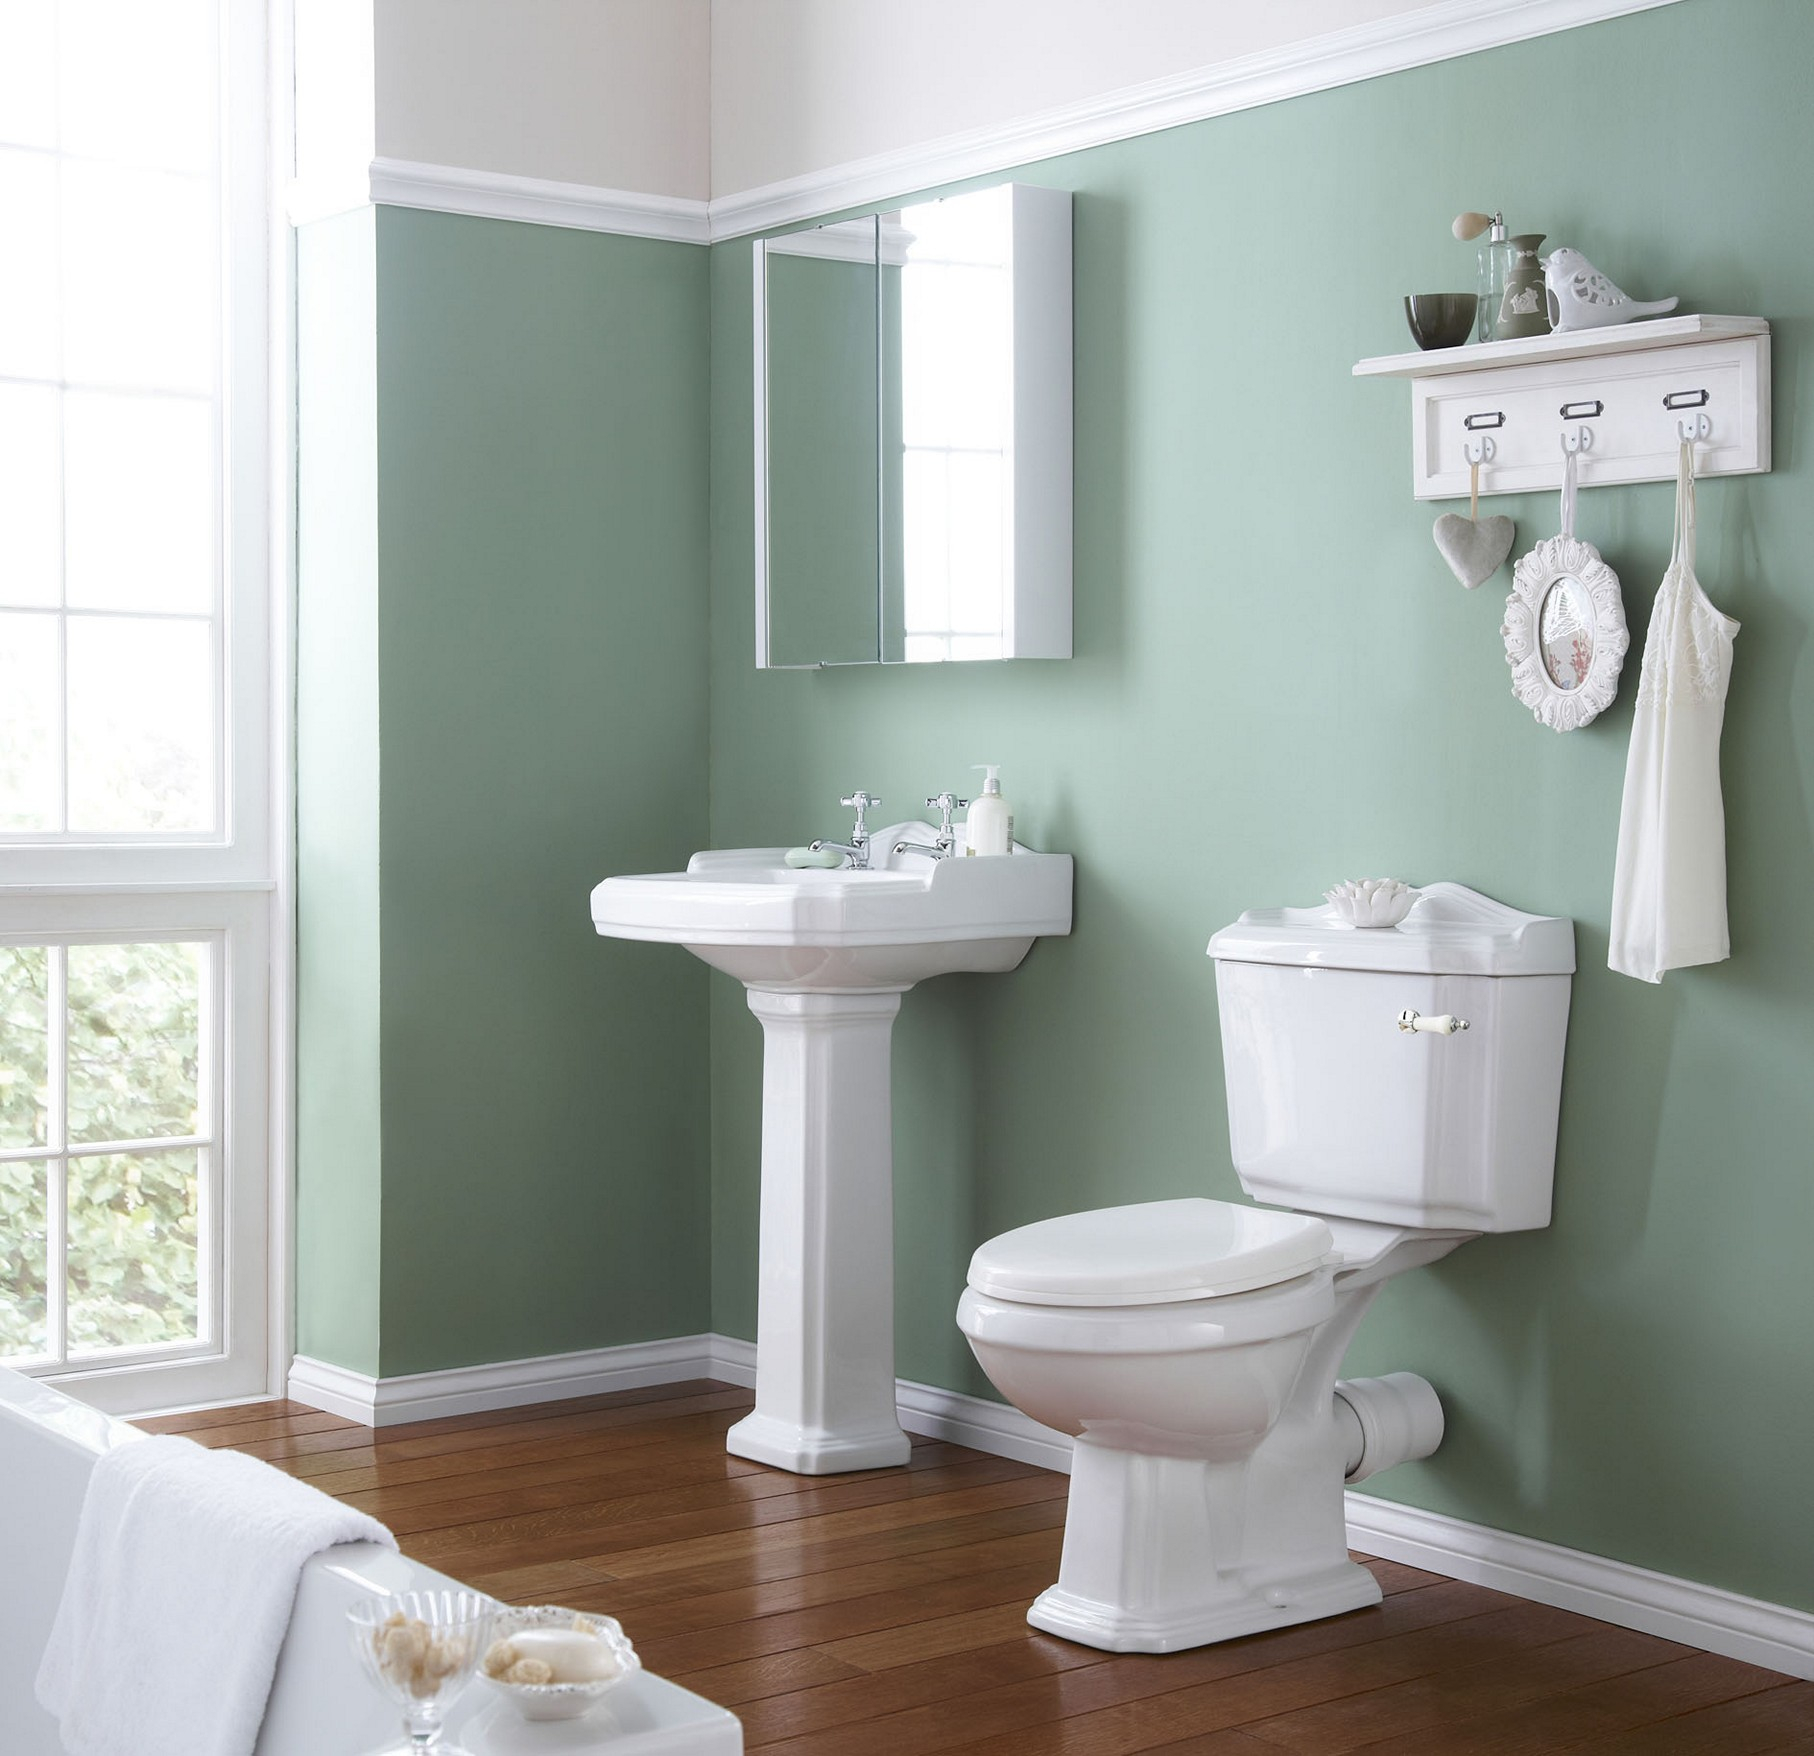 Epic Best Paint Colors For Bathroom Walls - All Tiling Sold In The United intended for New Small Bathroom Paint Ideas